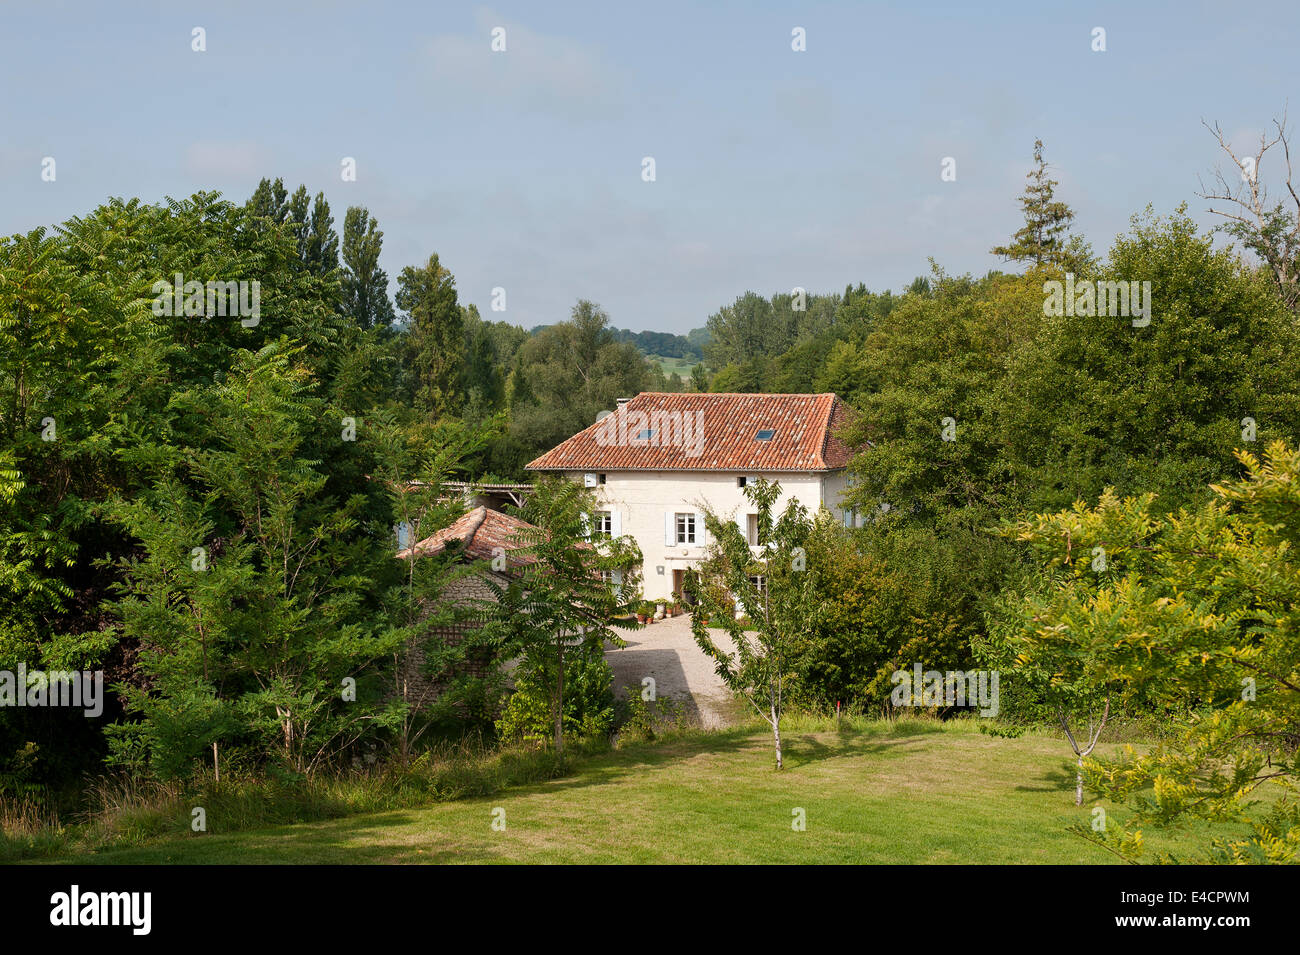 Exterior facade of the converted mill surrounded by green leaved trees - Stock Image